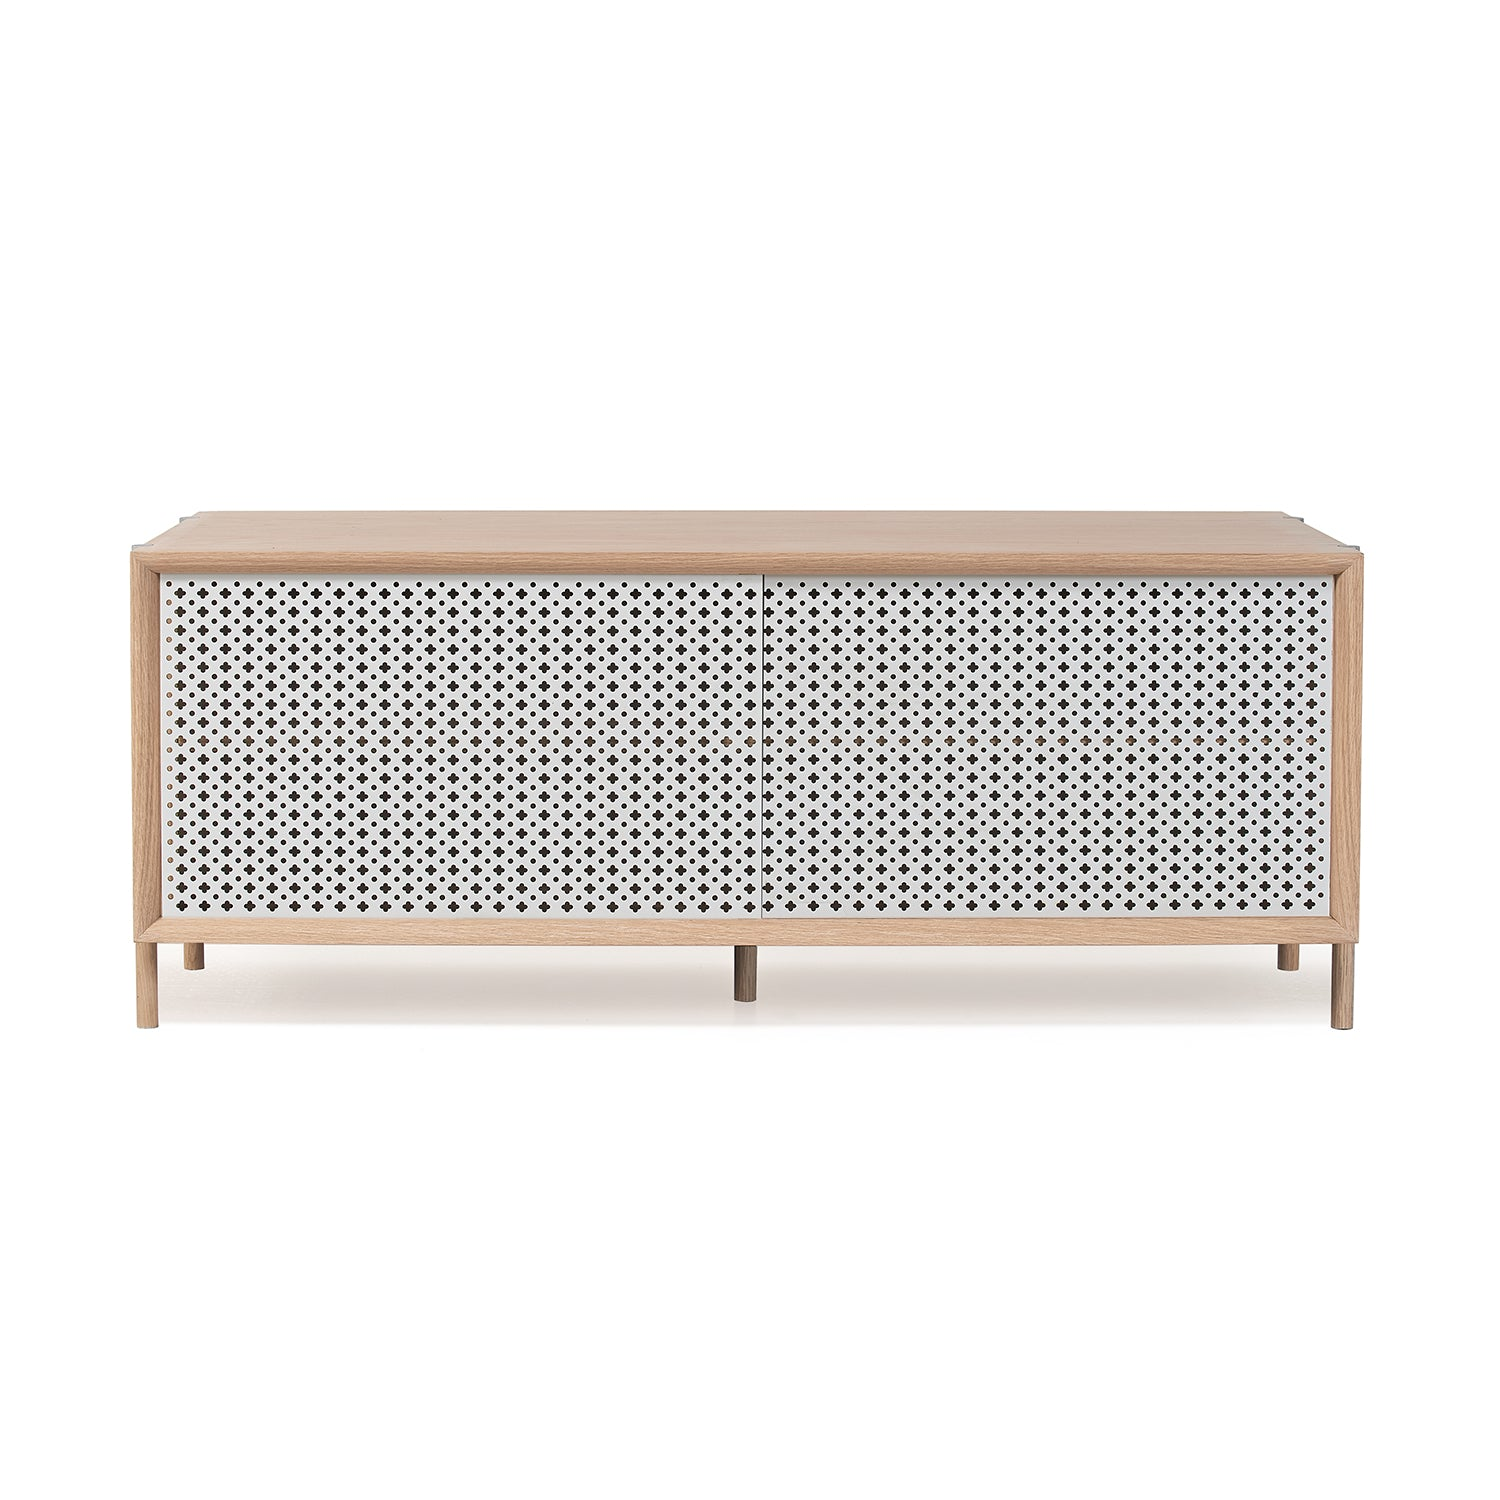 Gabin Sideboard: Small: Light Grey